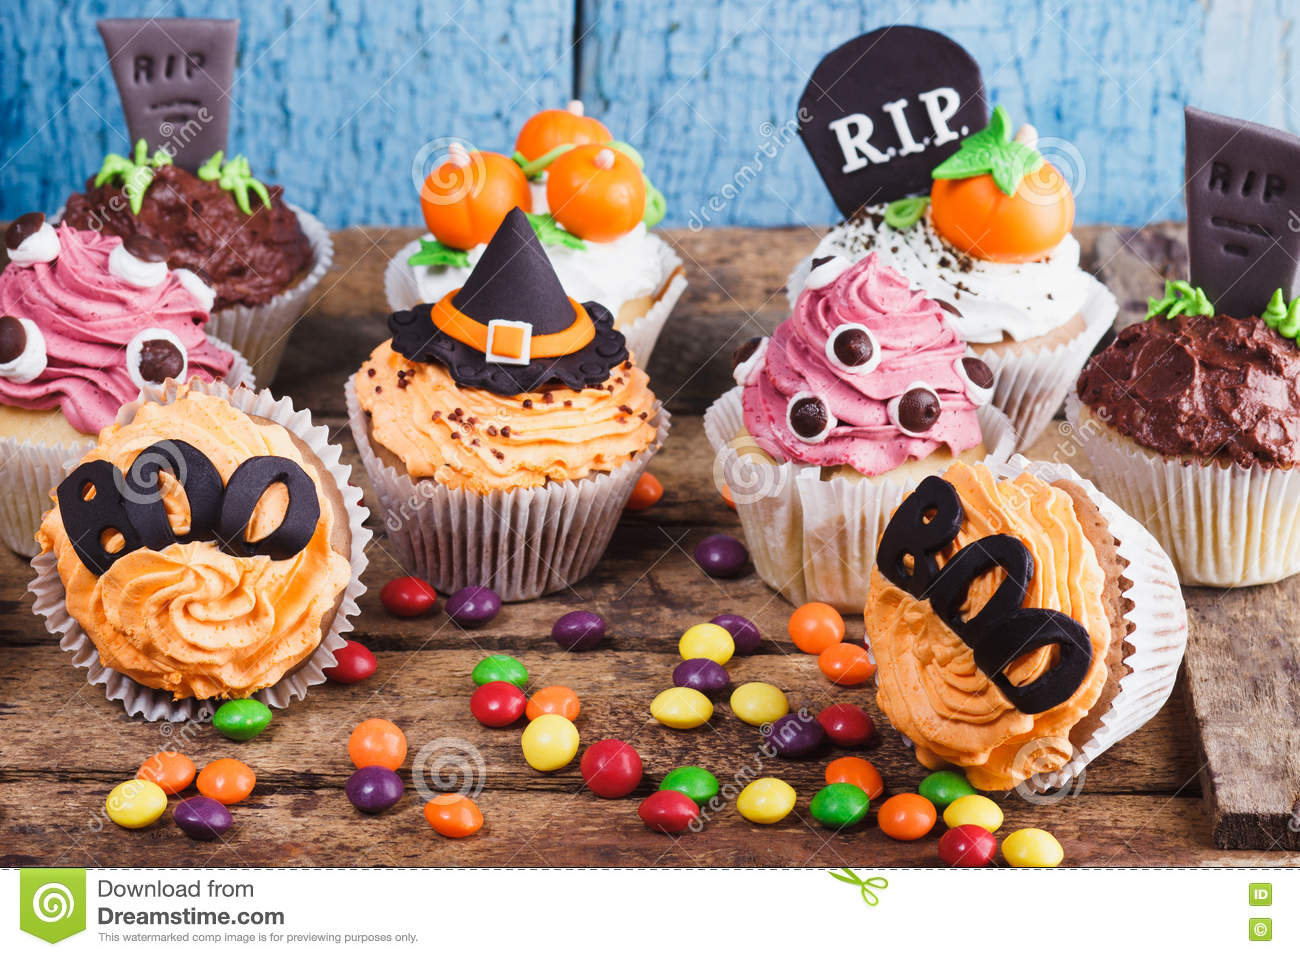 royalty free stock photo - Decorate Halloween Cupcakes